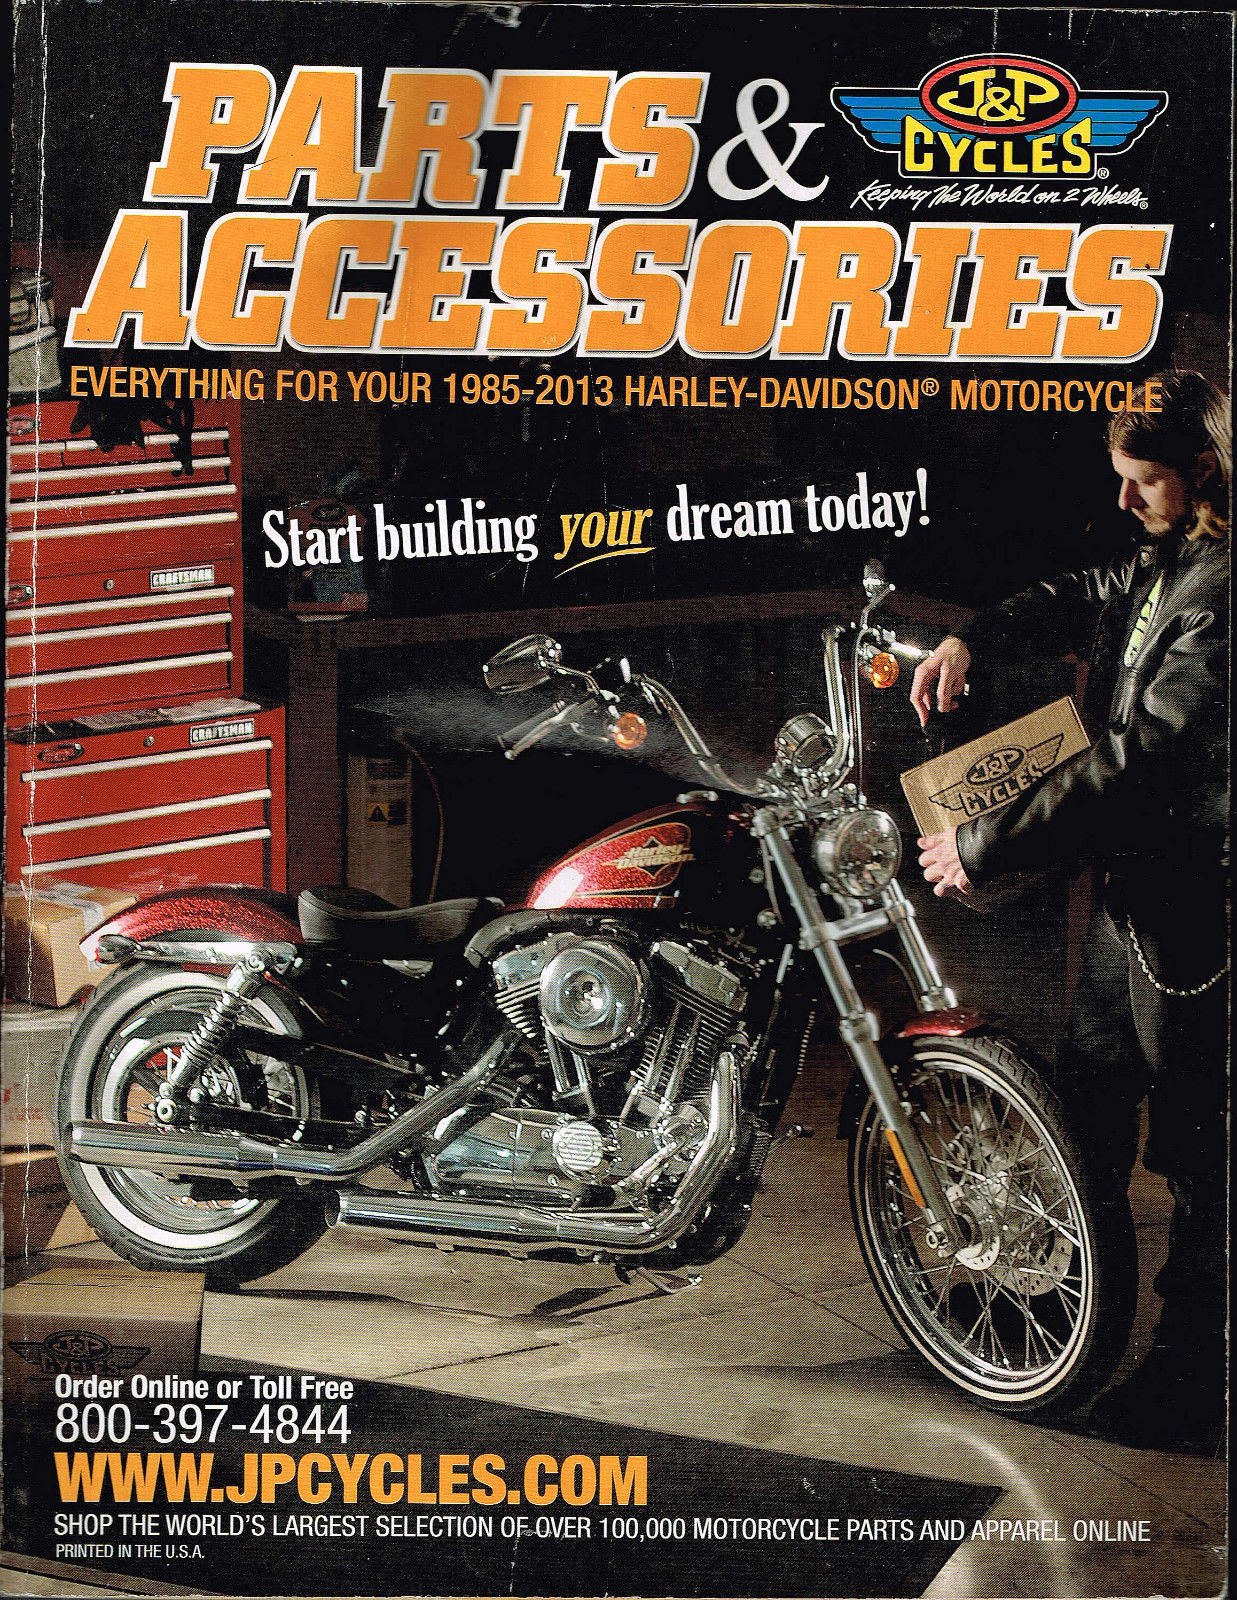 harley davidson accessories catalog 2011 j amp p parts amp accessories harley davidson catalog 2013 12168